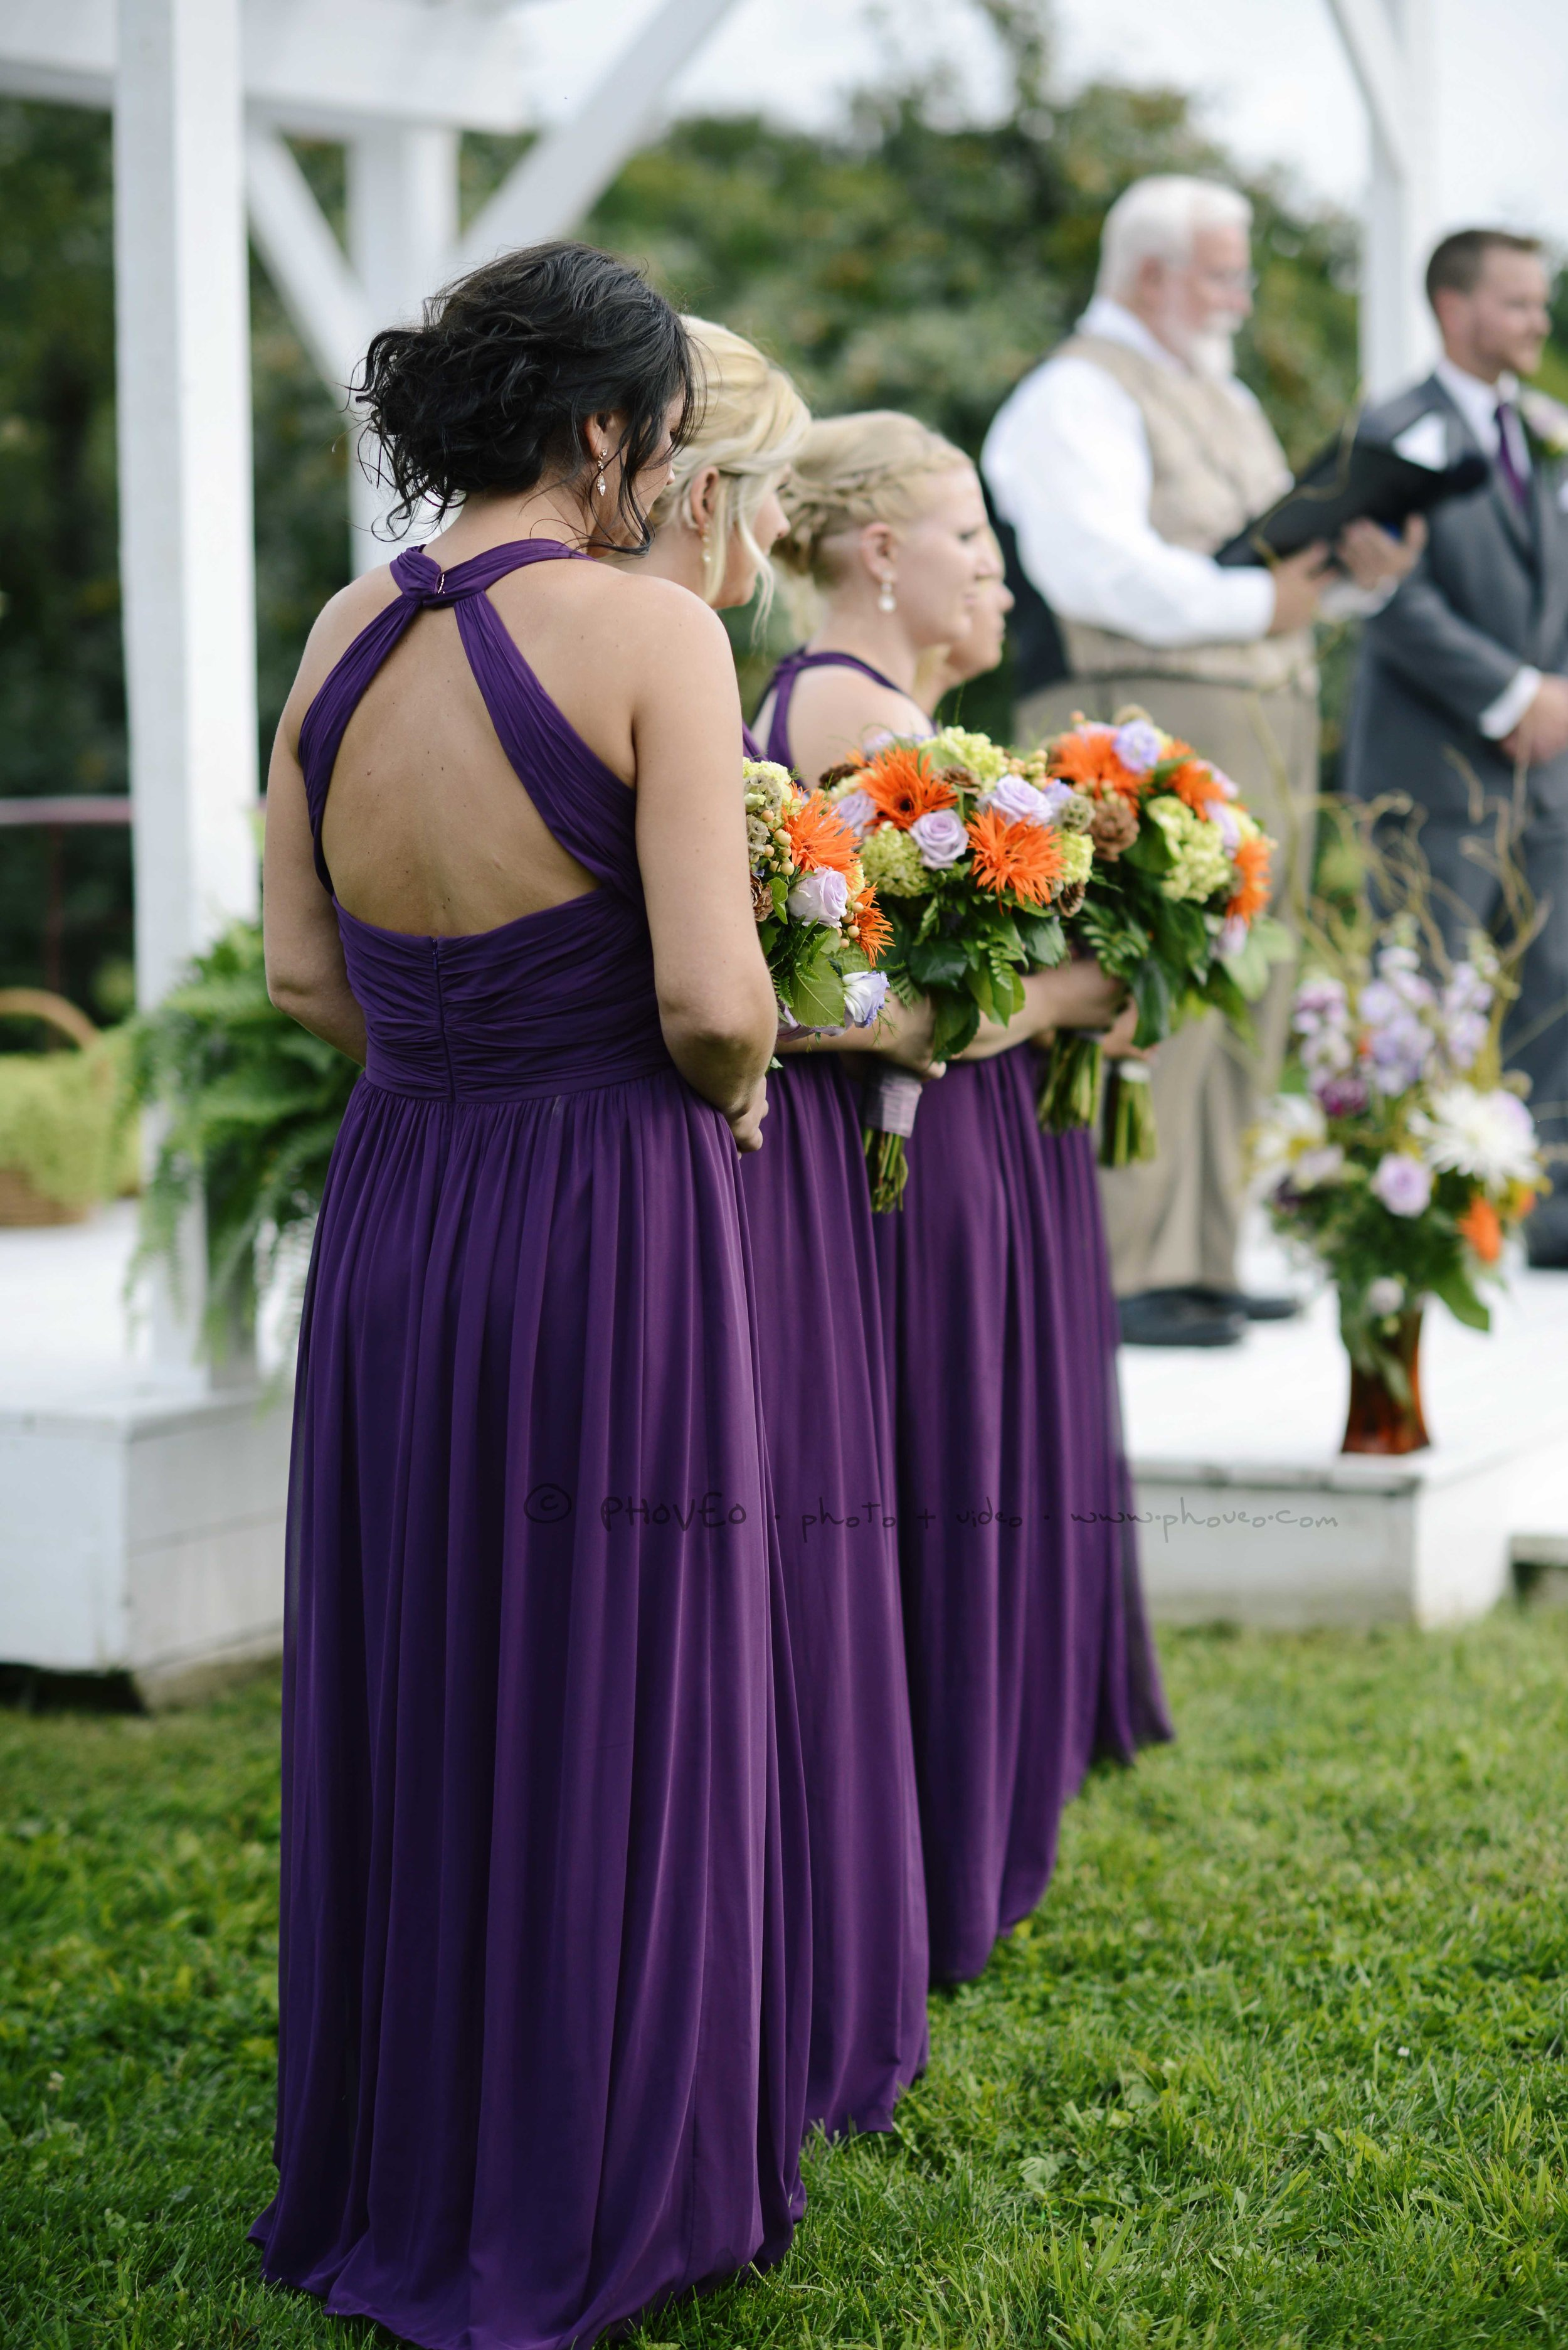 WM_20160826_Katelyn+Tony_43.jpg